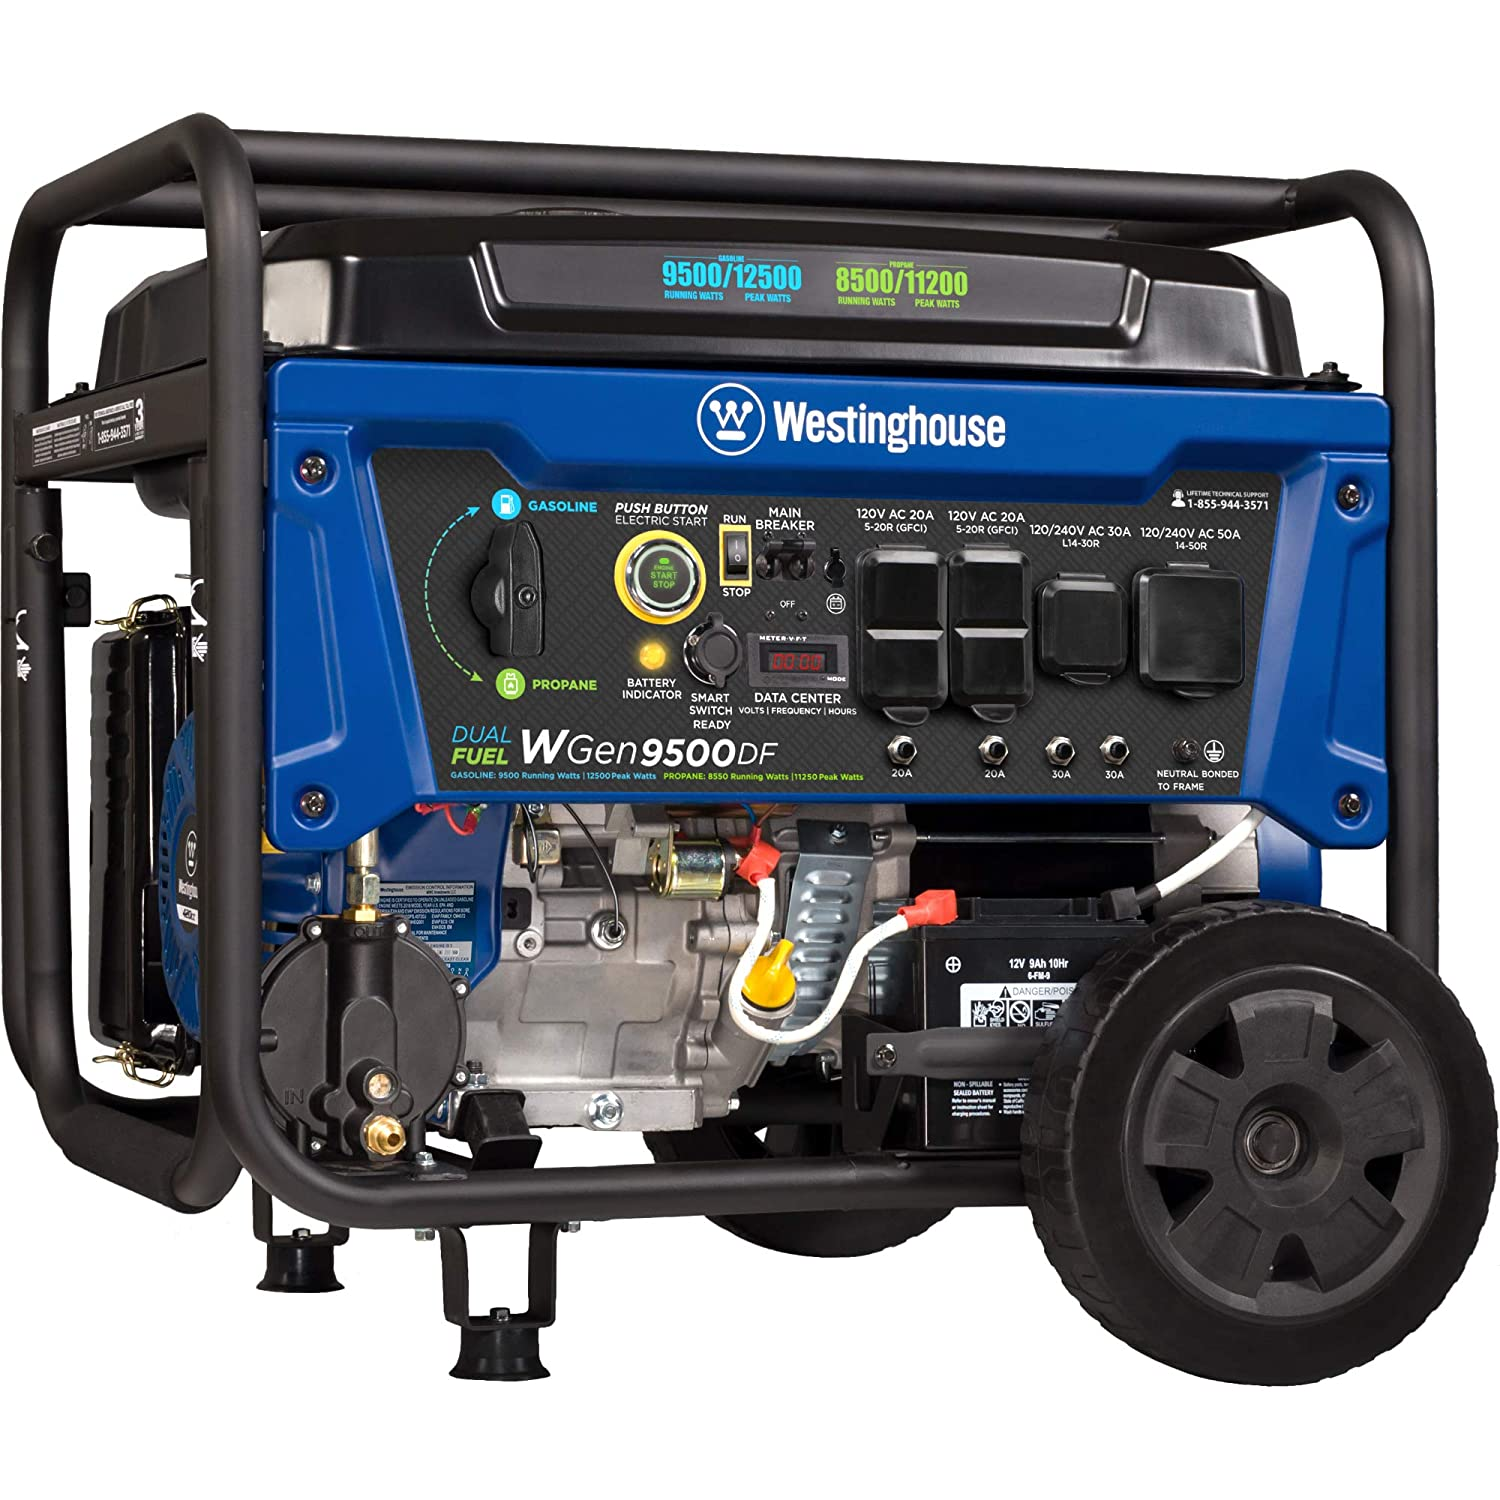 5 Best Propane Generator For Home Review & Guides 2020 1